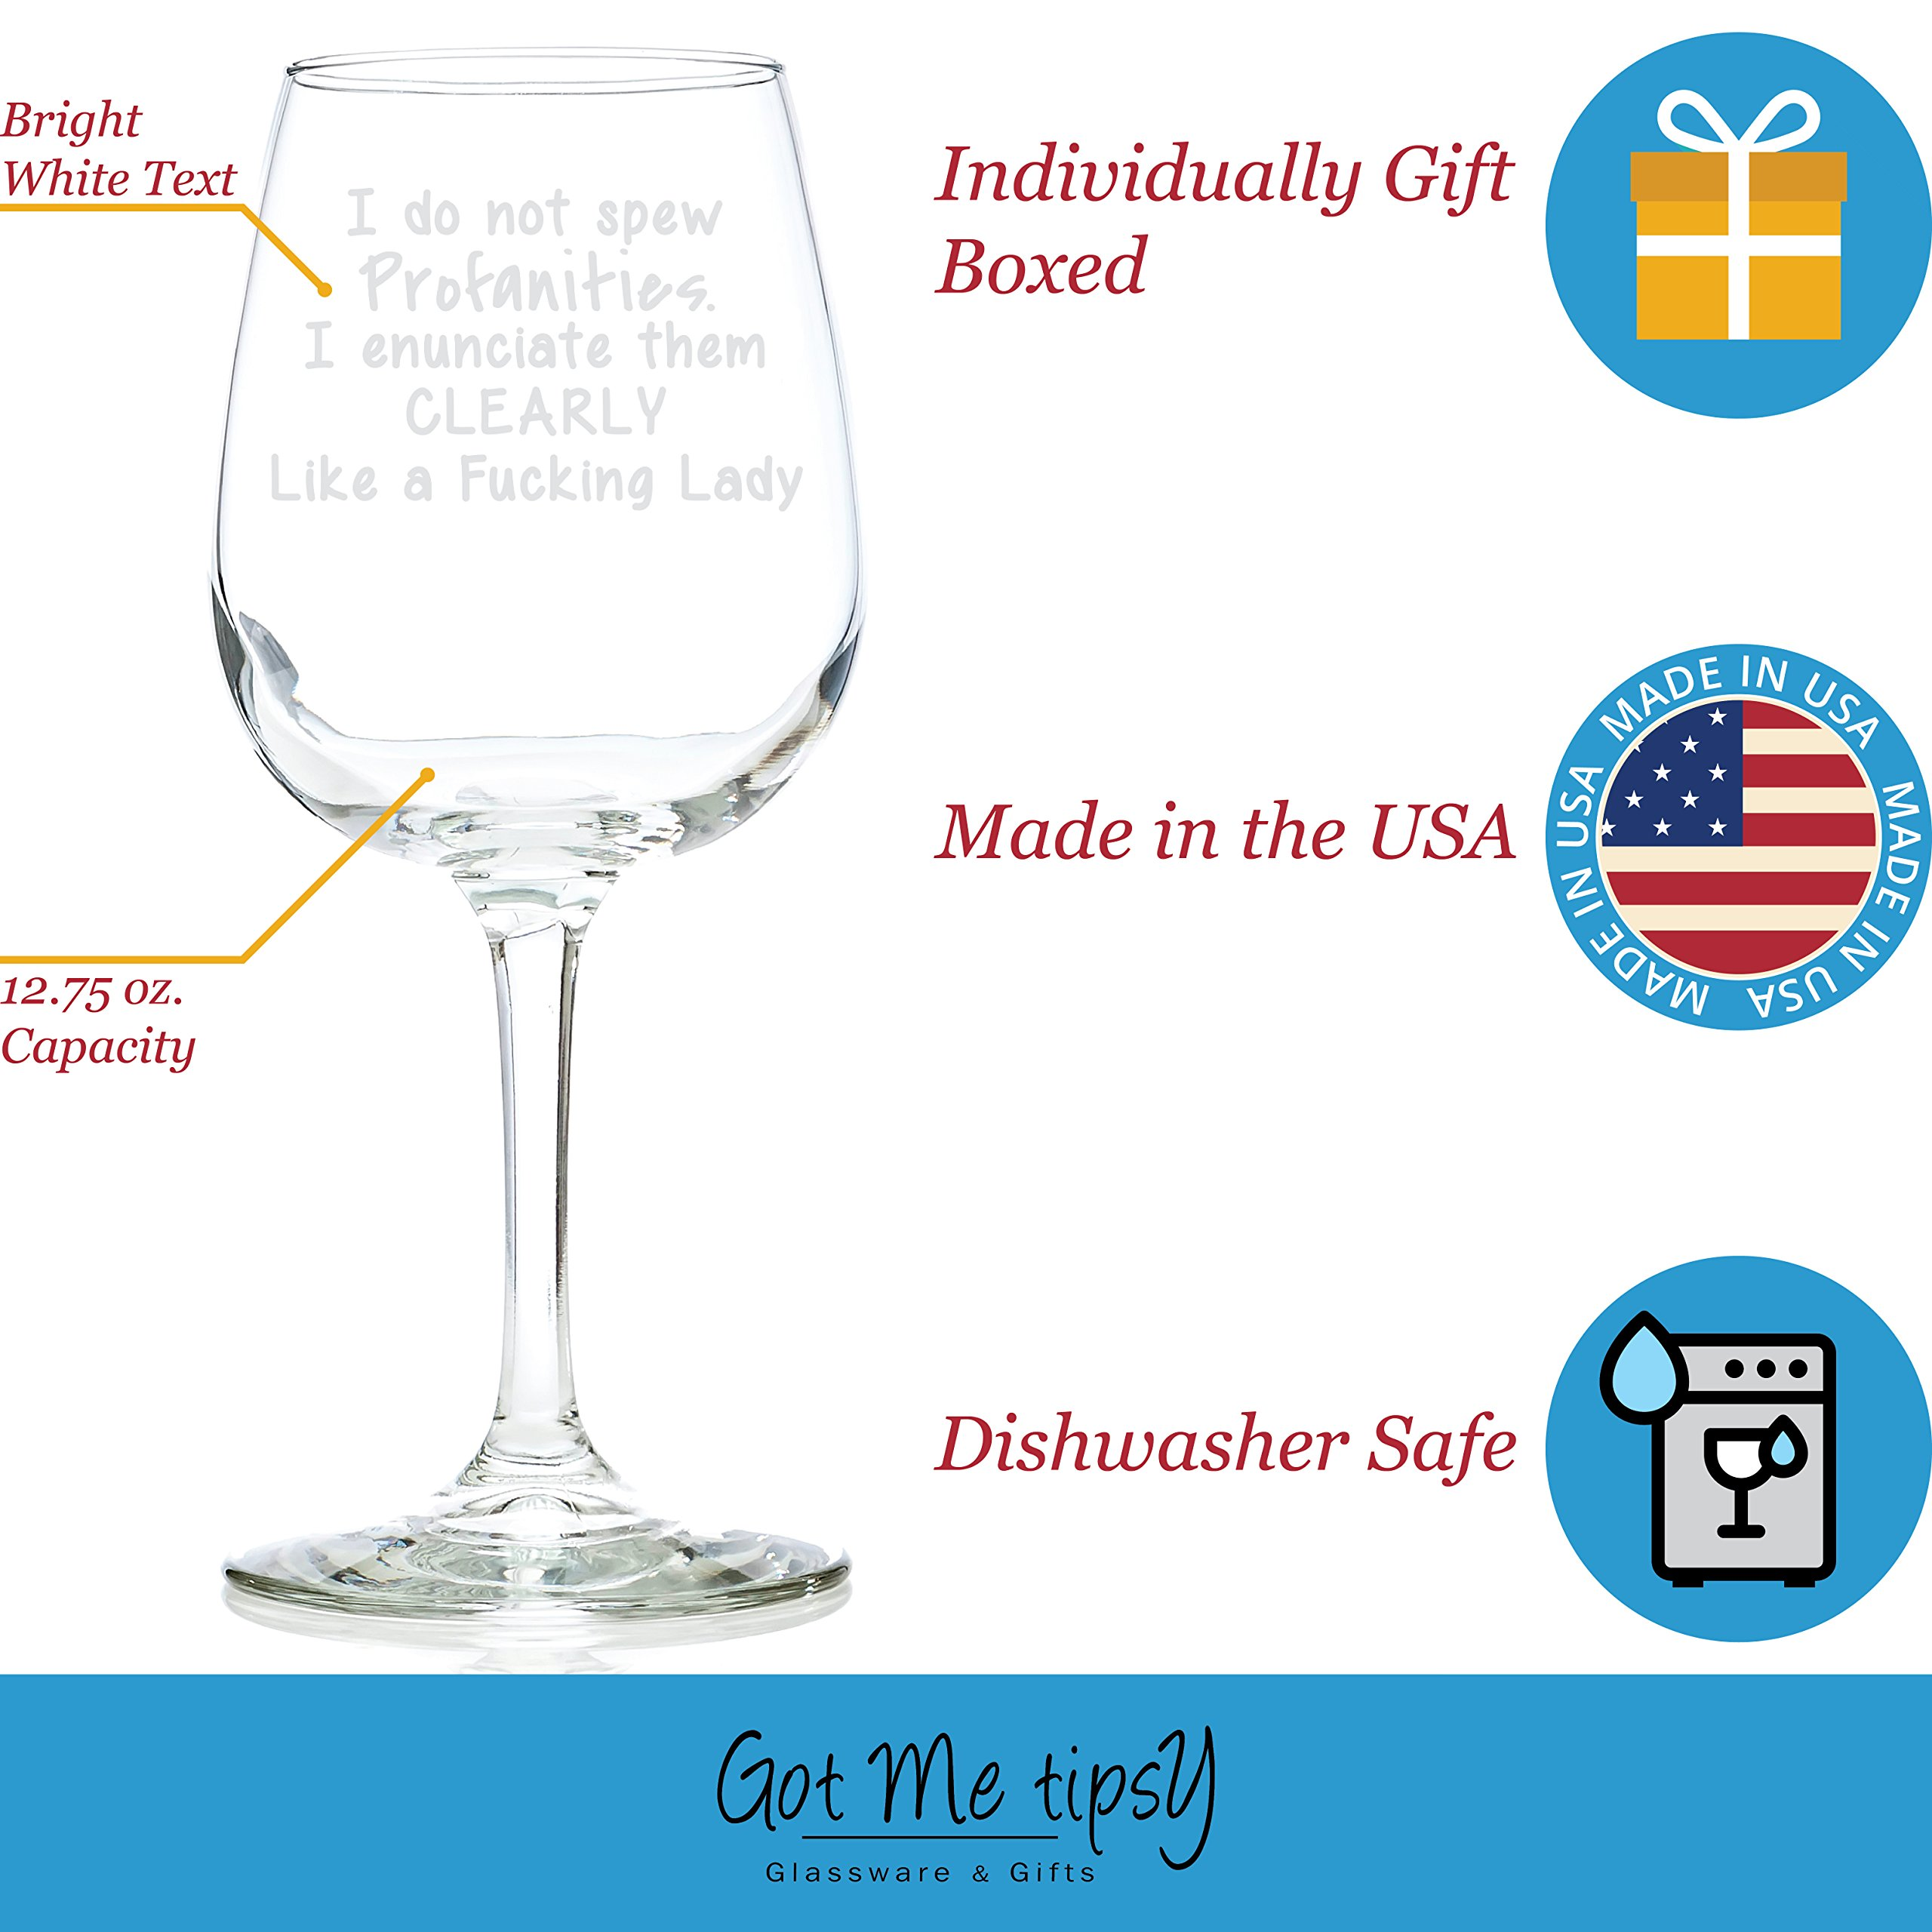 I Do Not Spew Profanities Funny Wine Glass 13 oz - Best Birthday Gifts For Women - Unique Gift For Her - Christmas Present Idea For Mom, Wife, Girlfriend, Sister, Friend, Boss, Adult Daughter by Got Me Tipsy (Image #3)